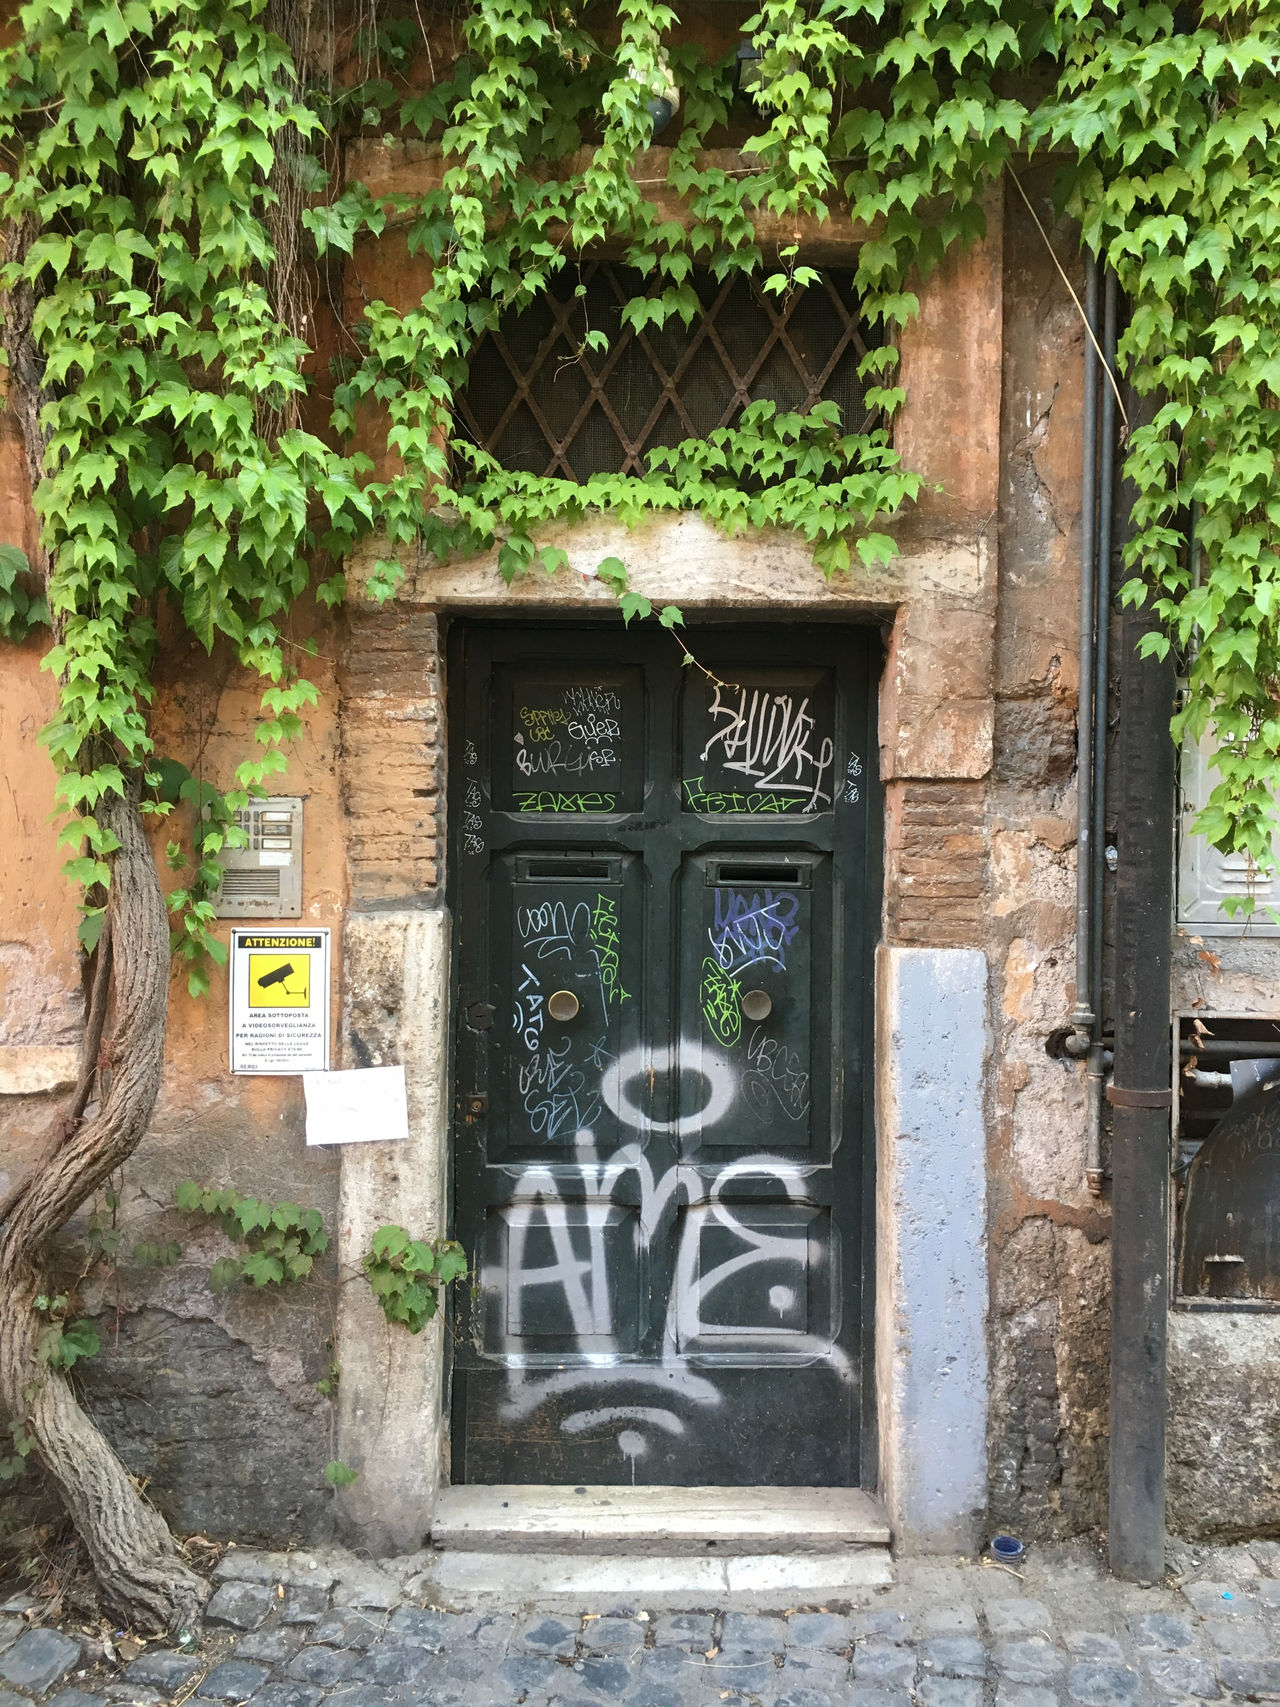 Someone lives here! Architecture Building Exterior Built Structure Day Door Entry Graffiti Growth Nature No People Outdoors Plant Trastevere Tree